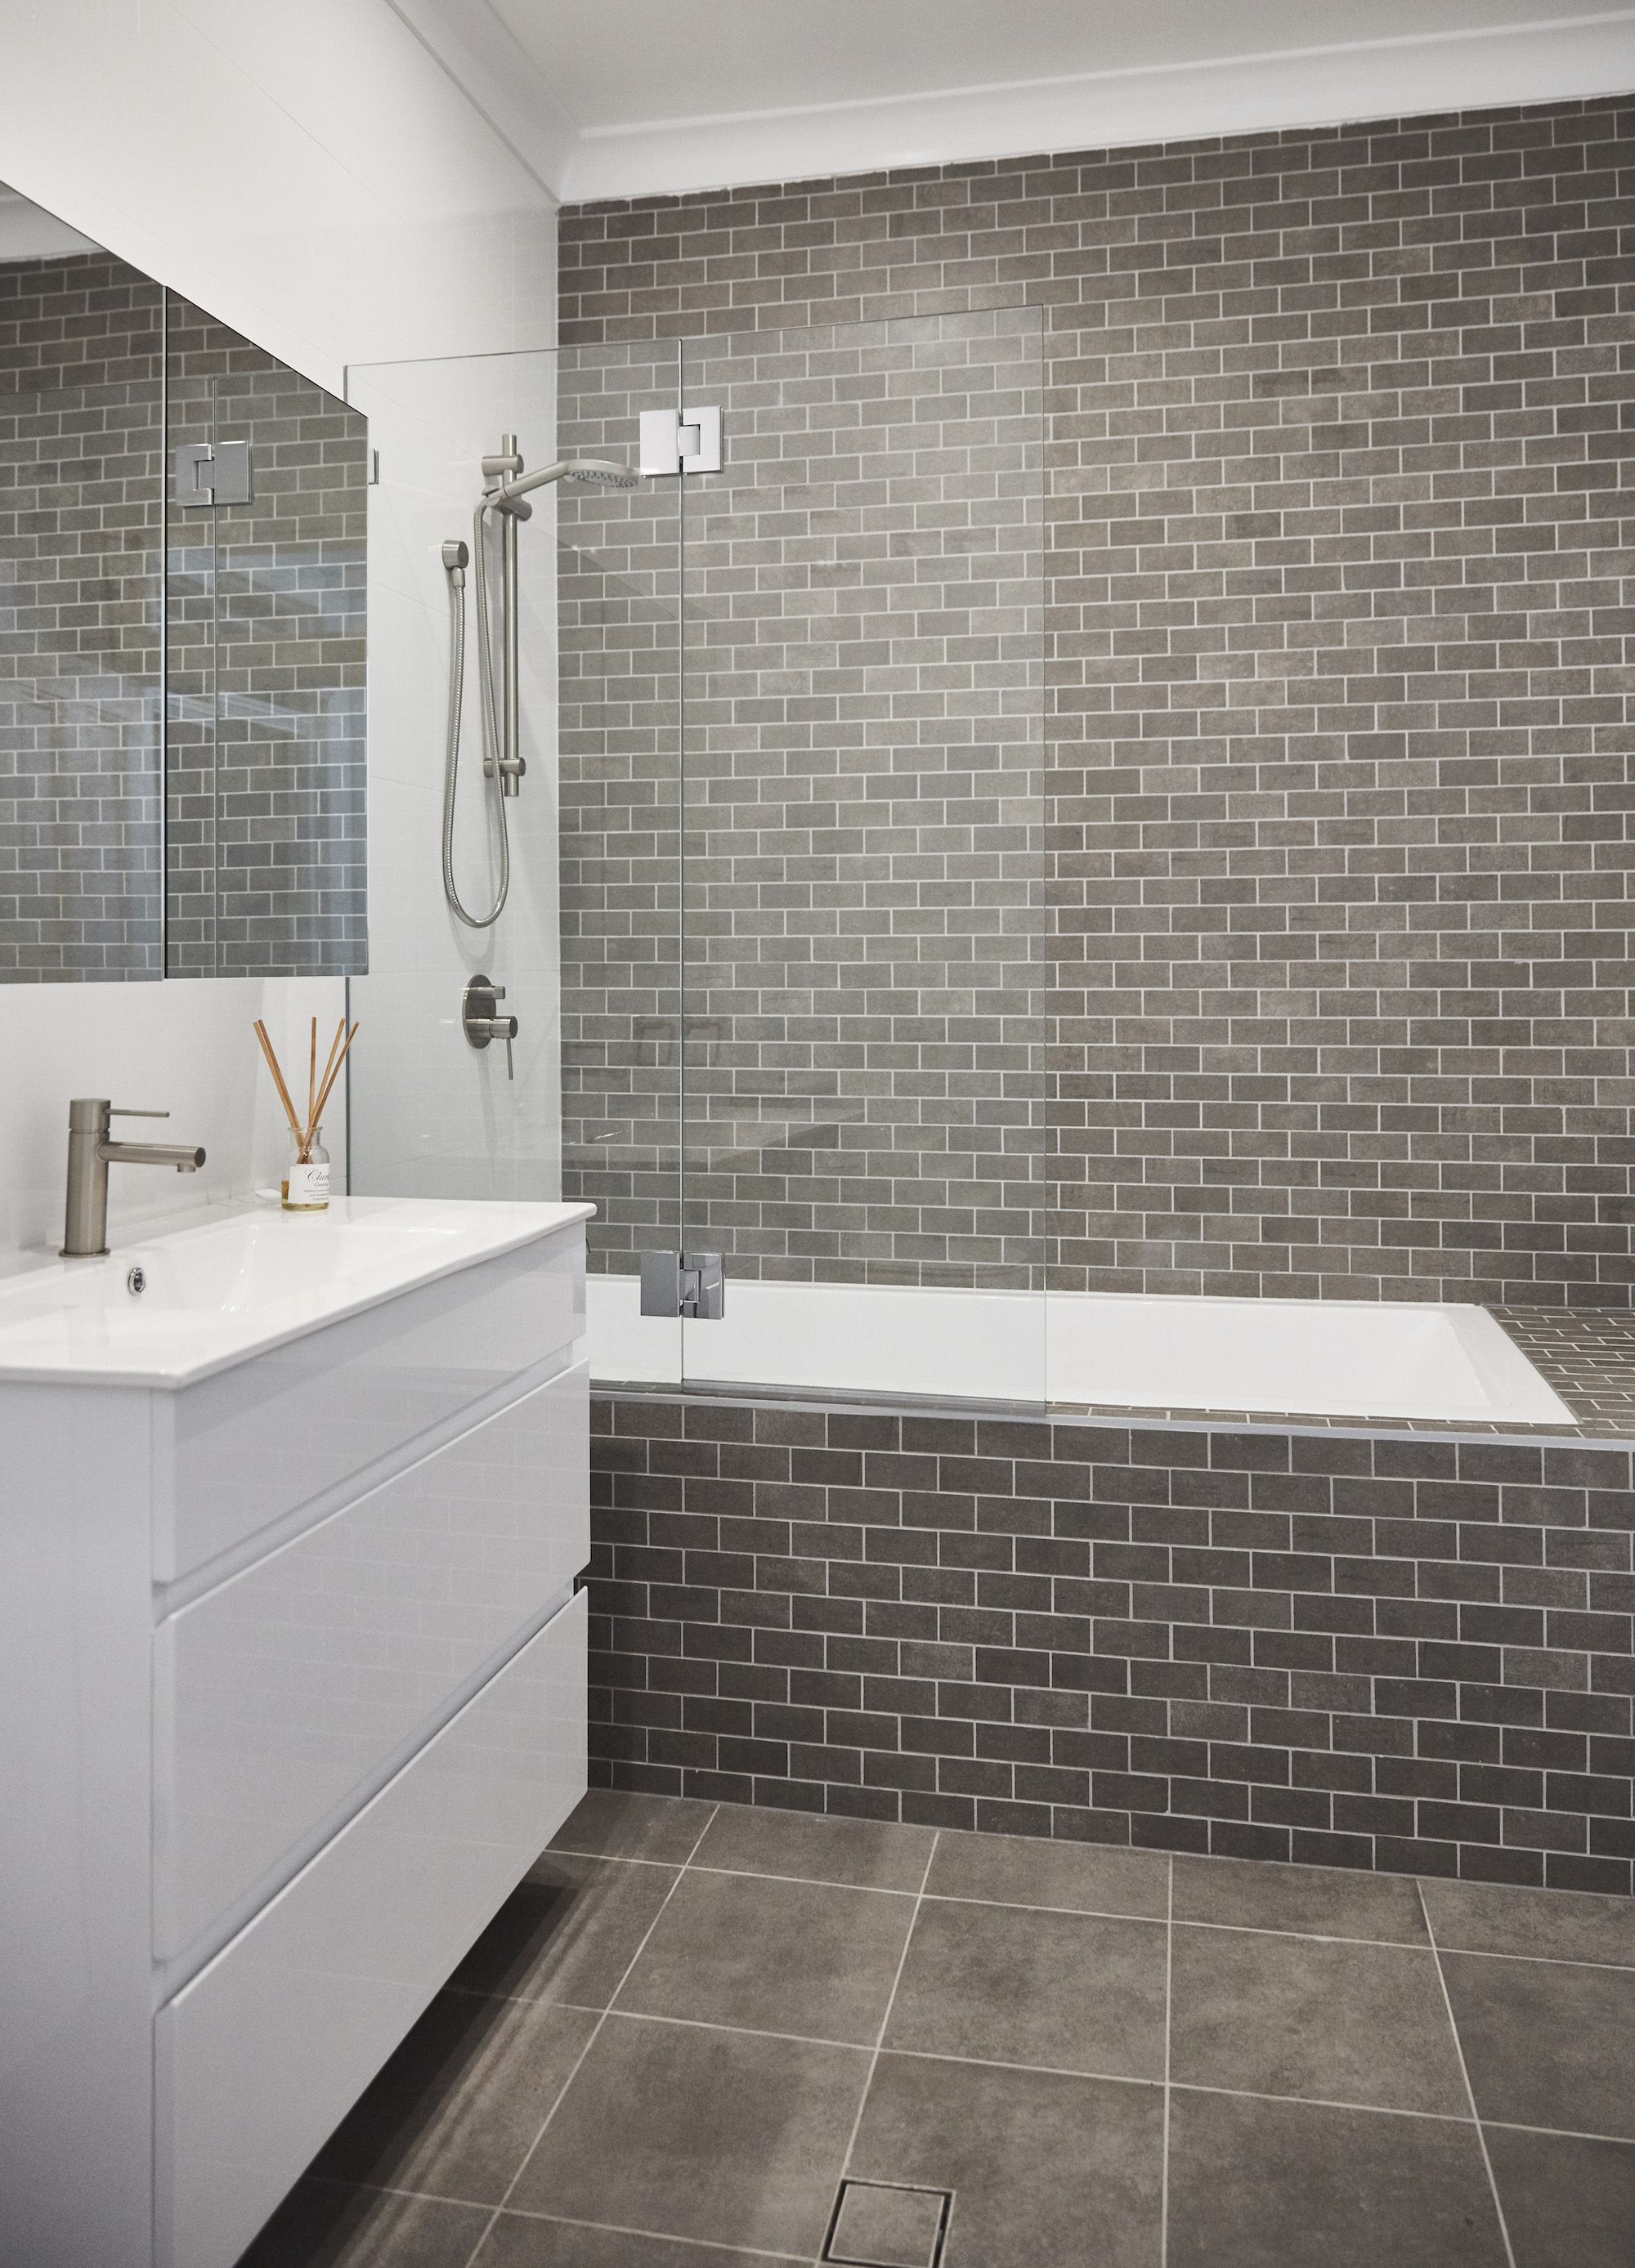 Modern Bathroom Mosaic Feature Tile White And Grey Bathroom Fascinating Mosaic Feature Tiles Bathroom Design Decoration